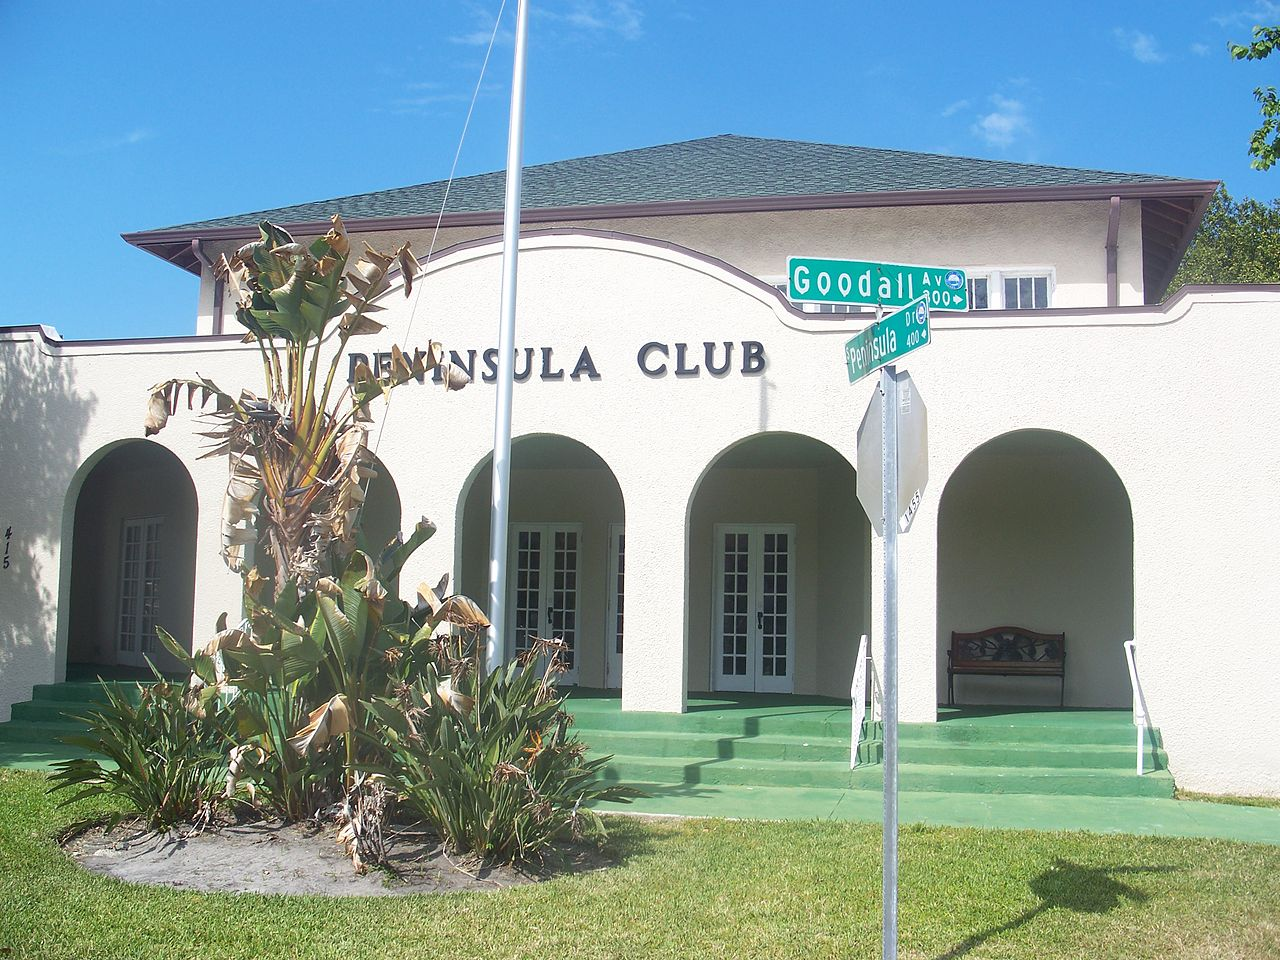 file:daytona beach fl south peninsula hd peninsula club02